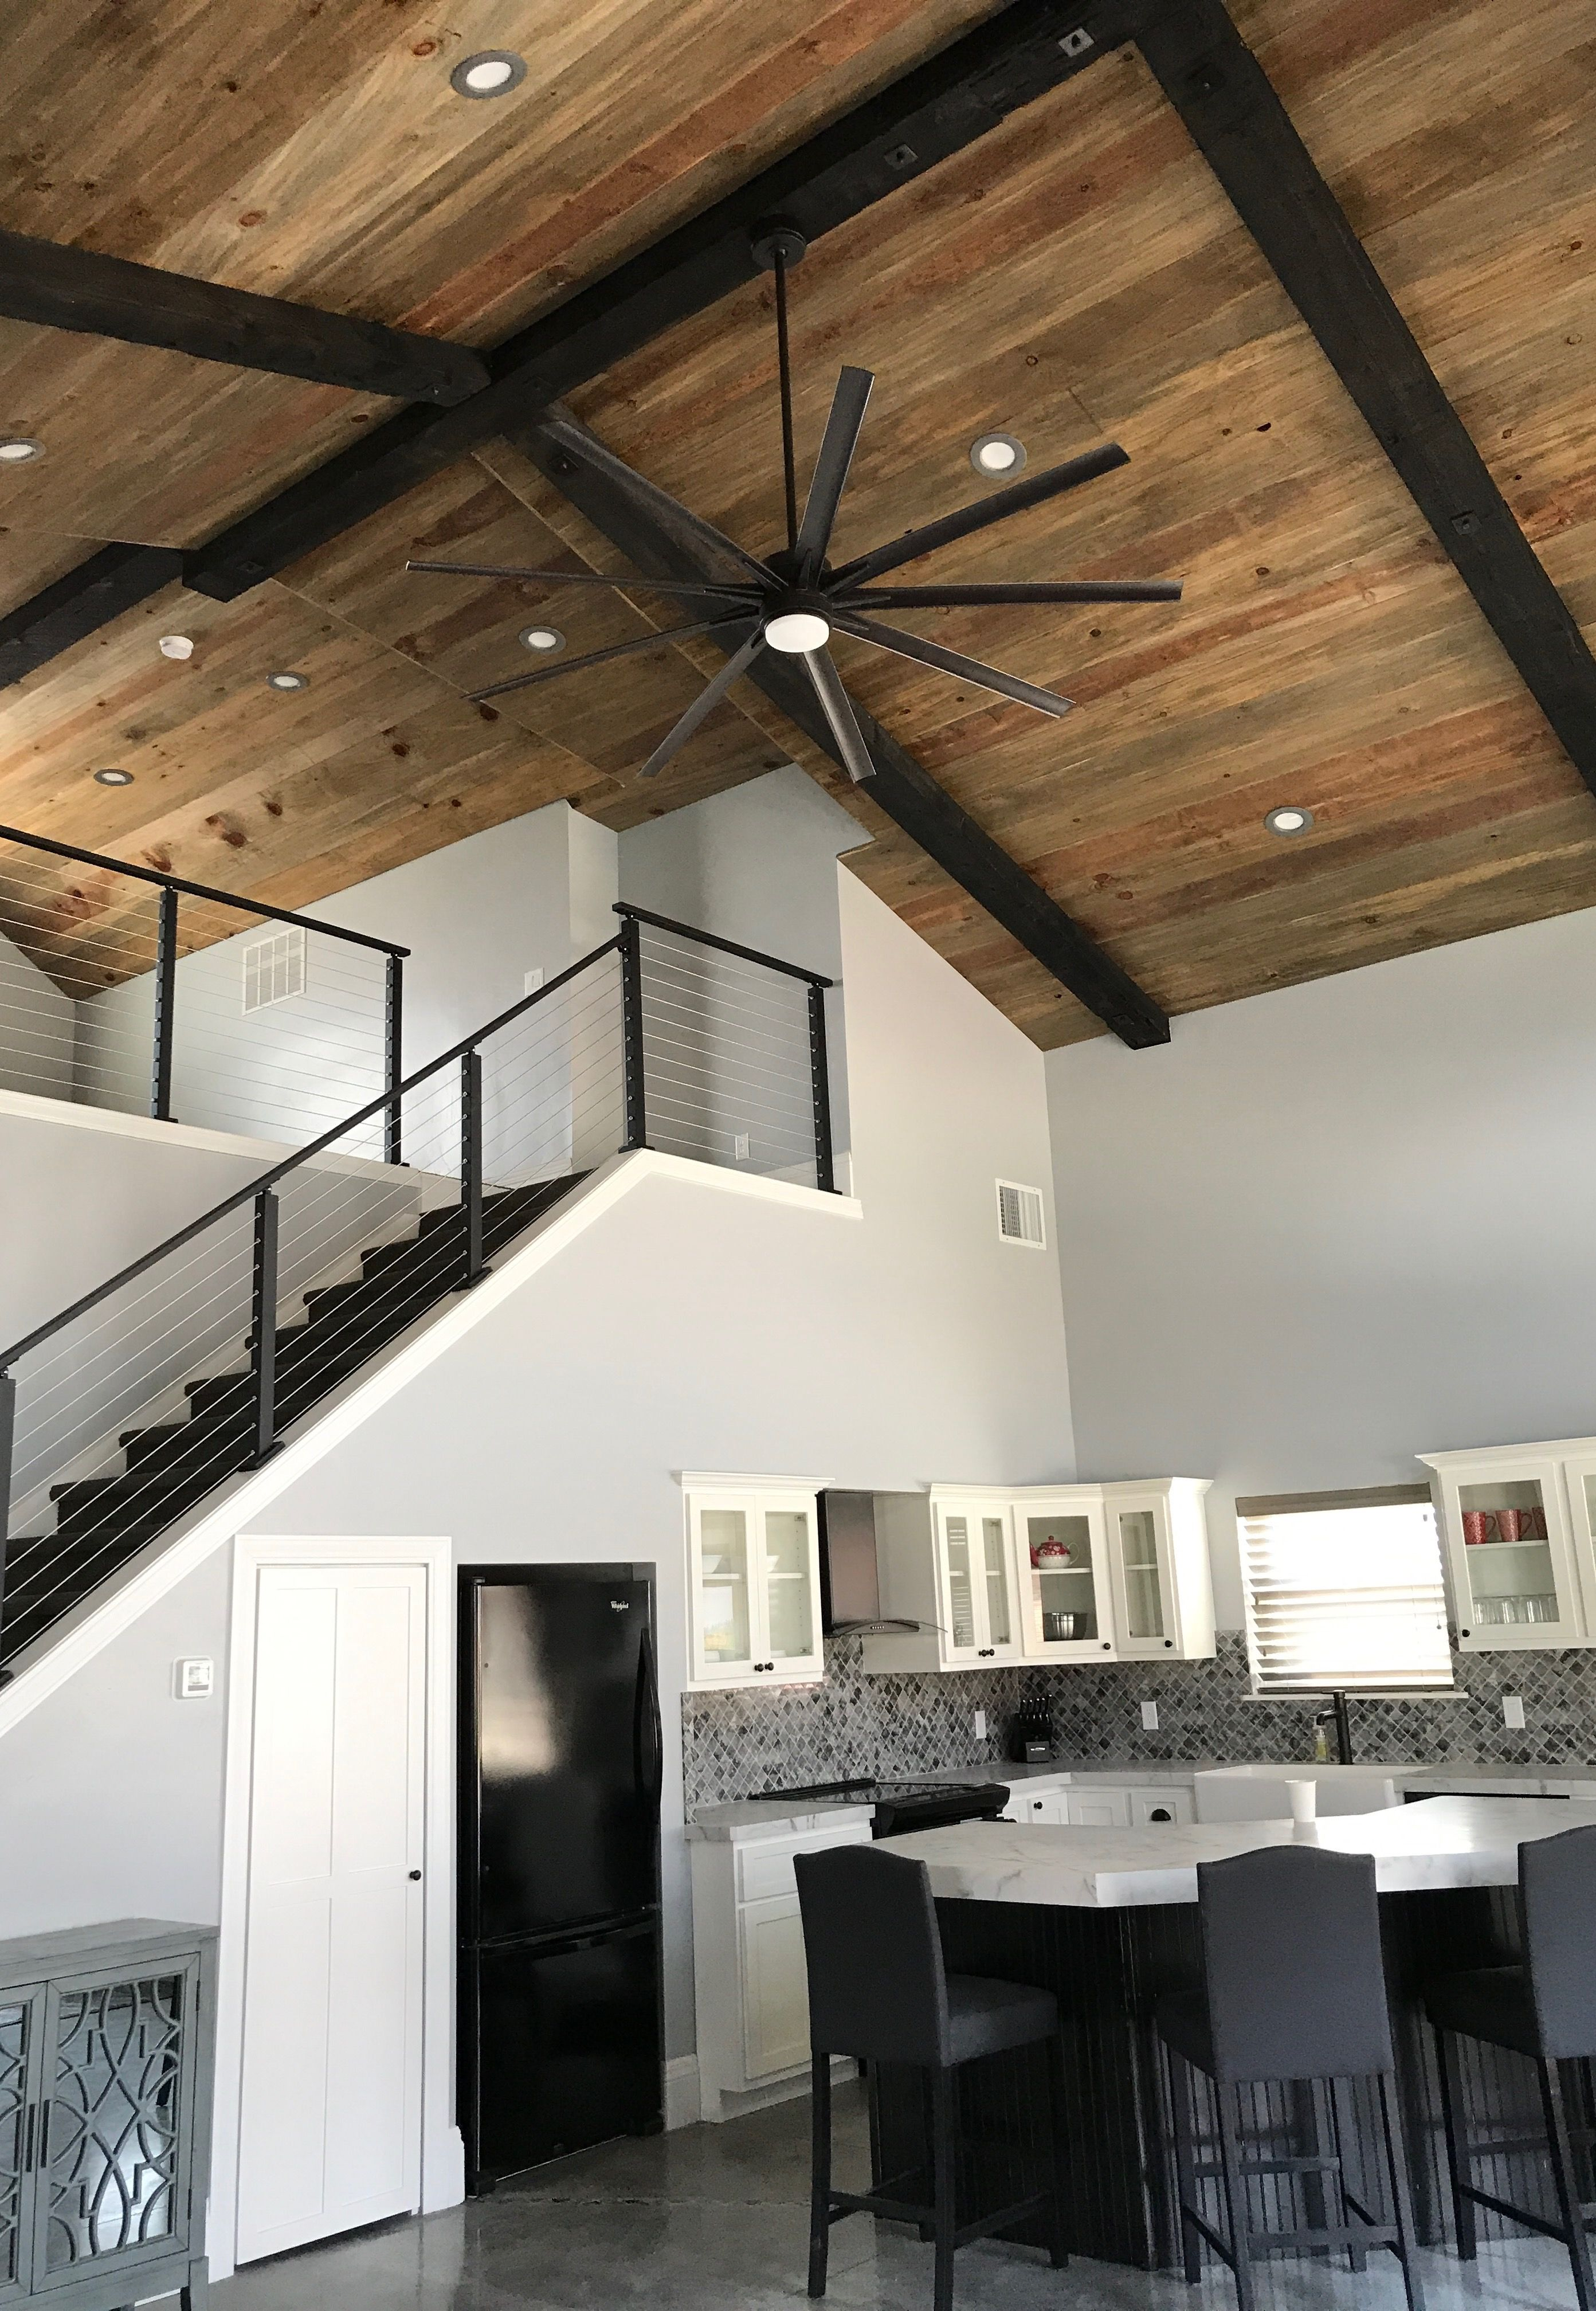 Check out this great interior using our pine shiplap